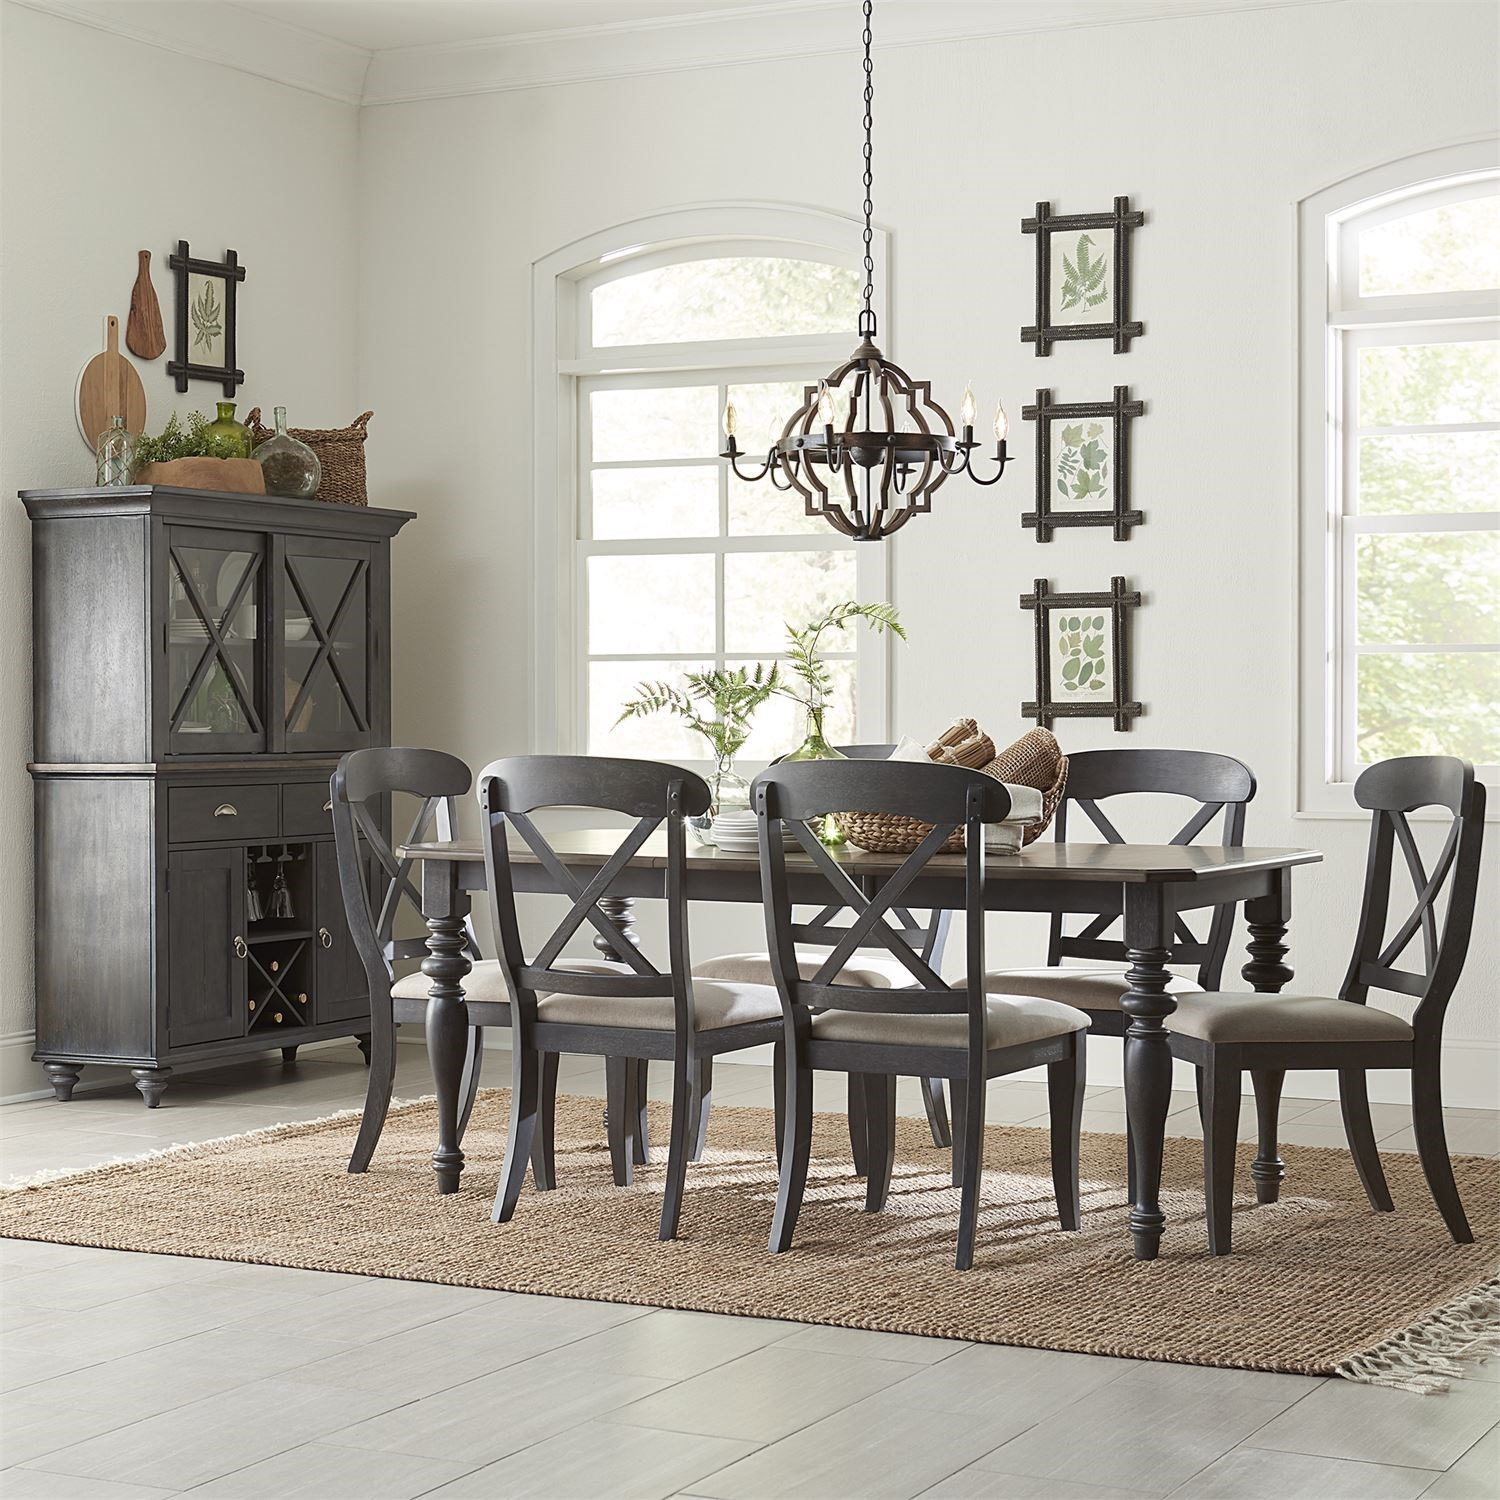 Ocean Isle Dining Room Group by Liberty Furniture at Johnny Janosik